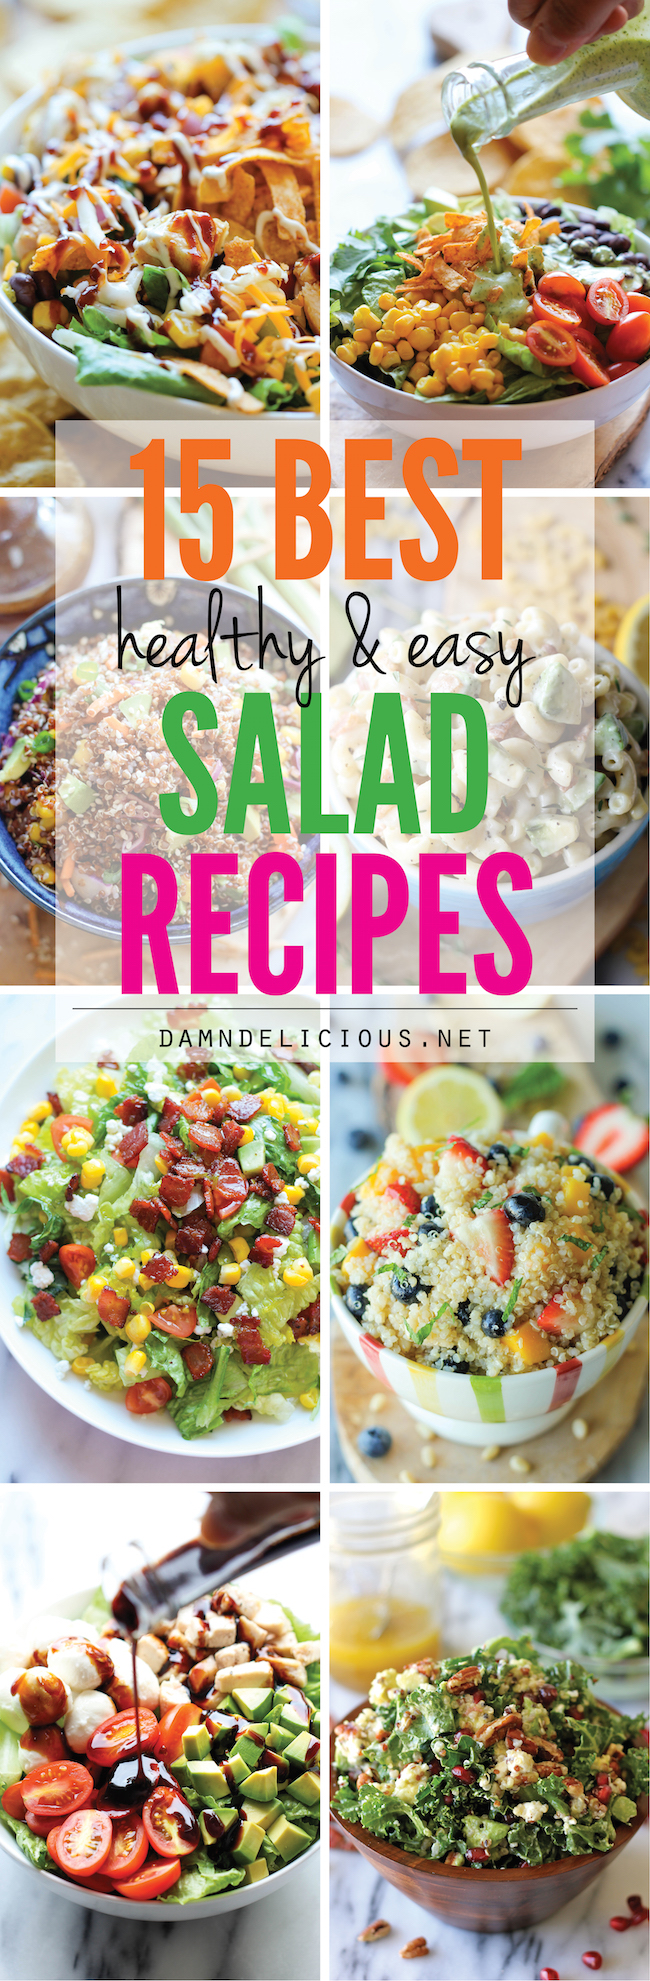 15 best healthy and easy salad recipes damn delicious 15 best healthy and easy salad recipes easy fresh and healthy salad recipes forumfinder Images